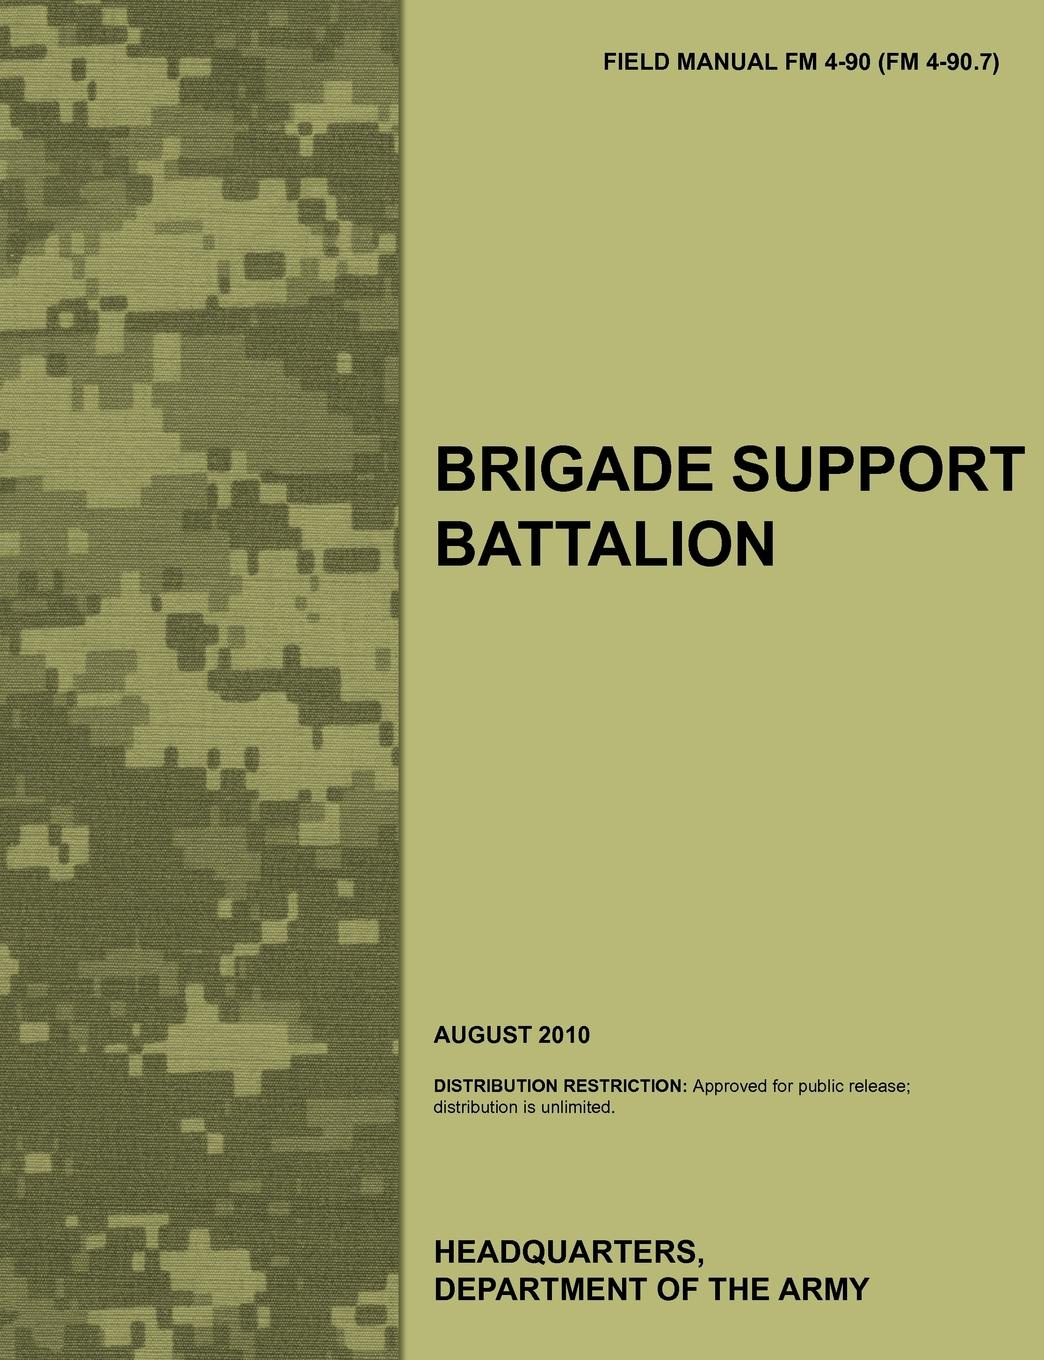 Army Training Doctrine and Command, U. S. Department of the Army Brigade Support Battalion. The Official U.S. Army Field Manual FM 4-90 (FM 4-90.7) (August 2010) christian valentin soils as a key component of the critical zone 1 functions and services